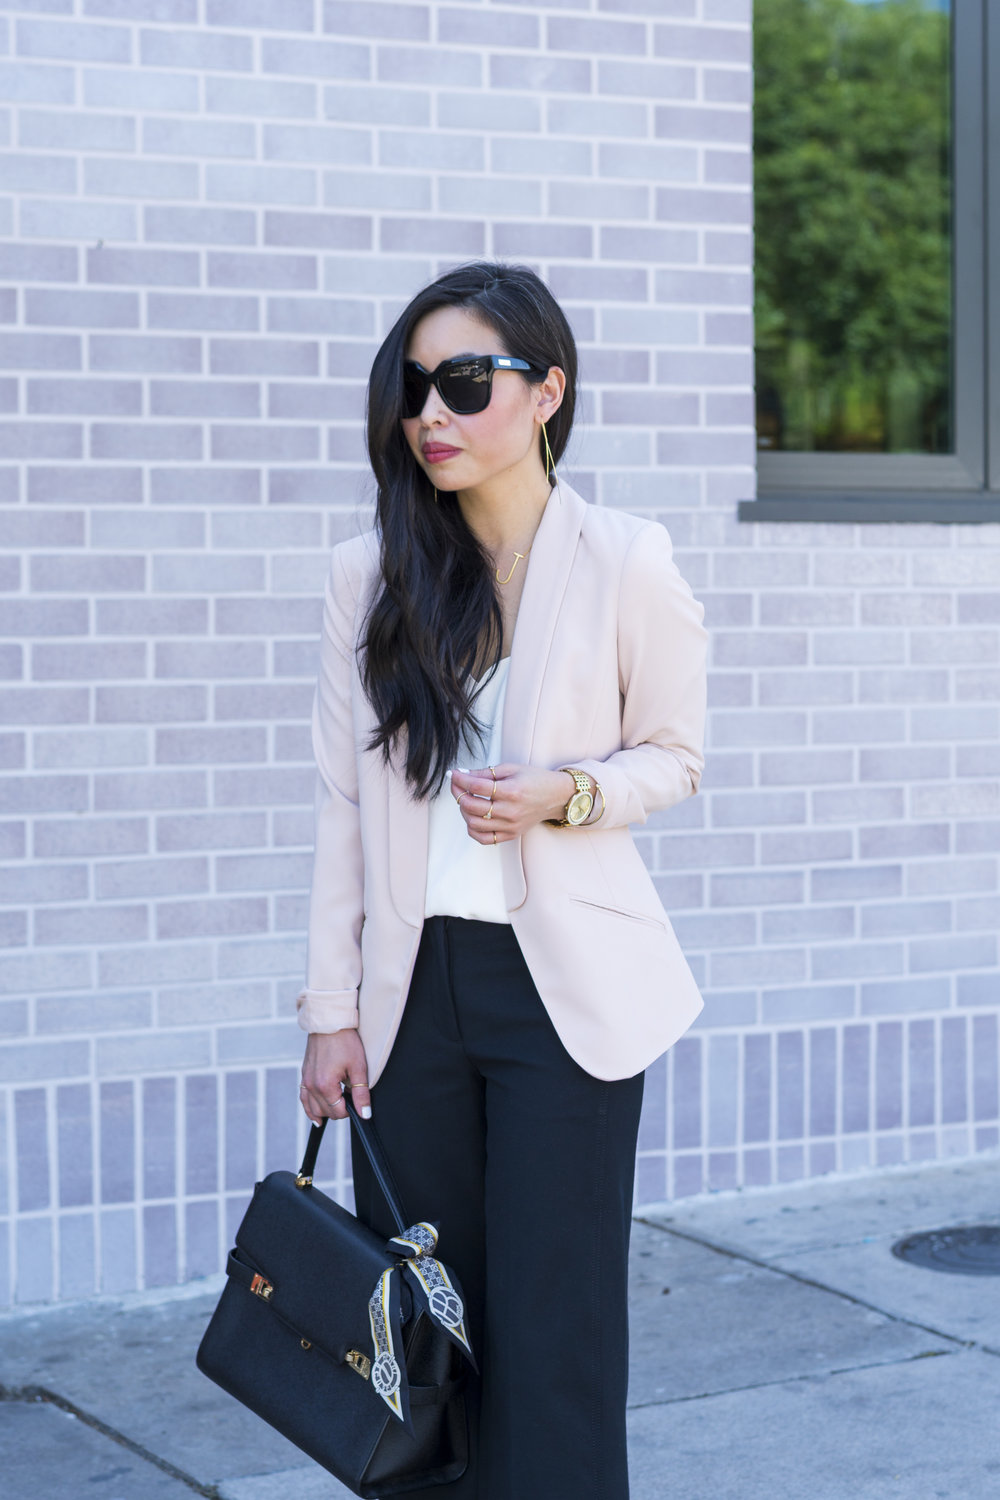 style it 9-5 by puting on a blazer to make it work appropriate